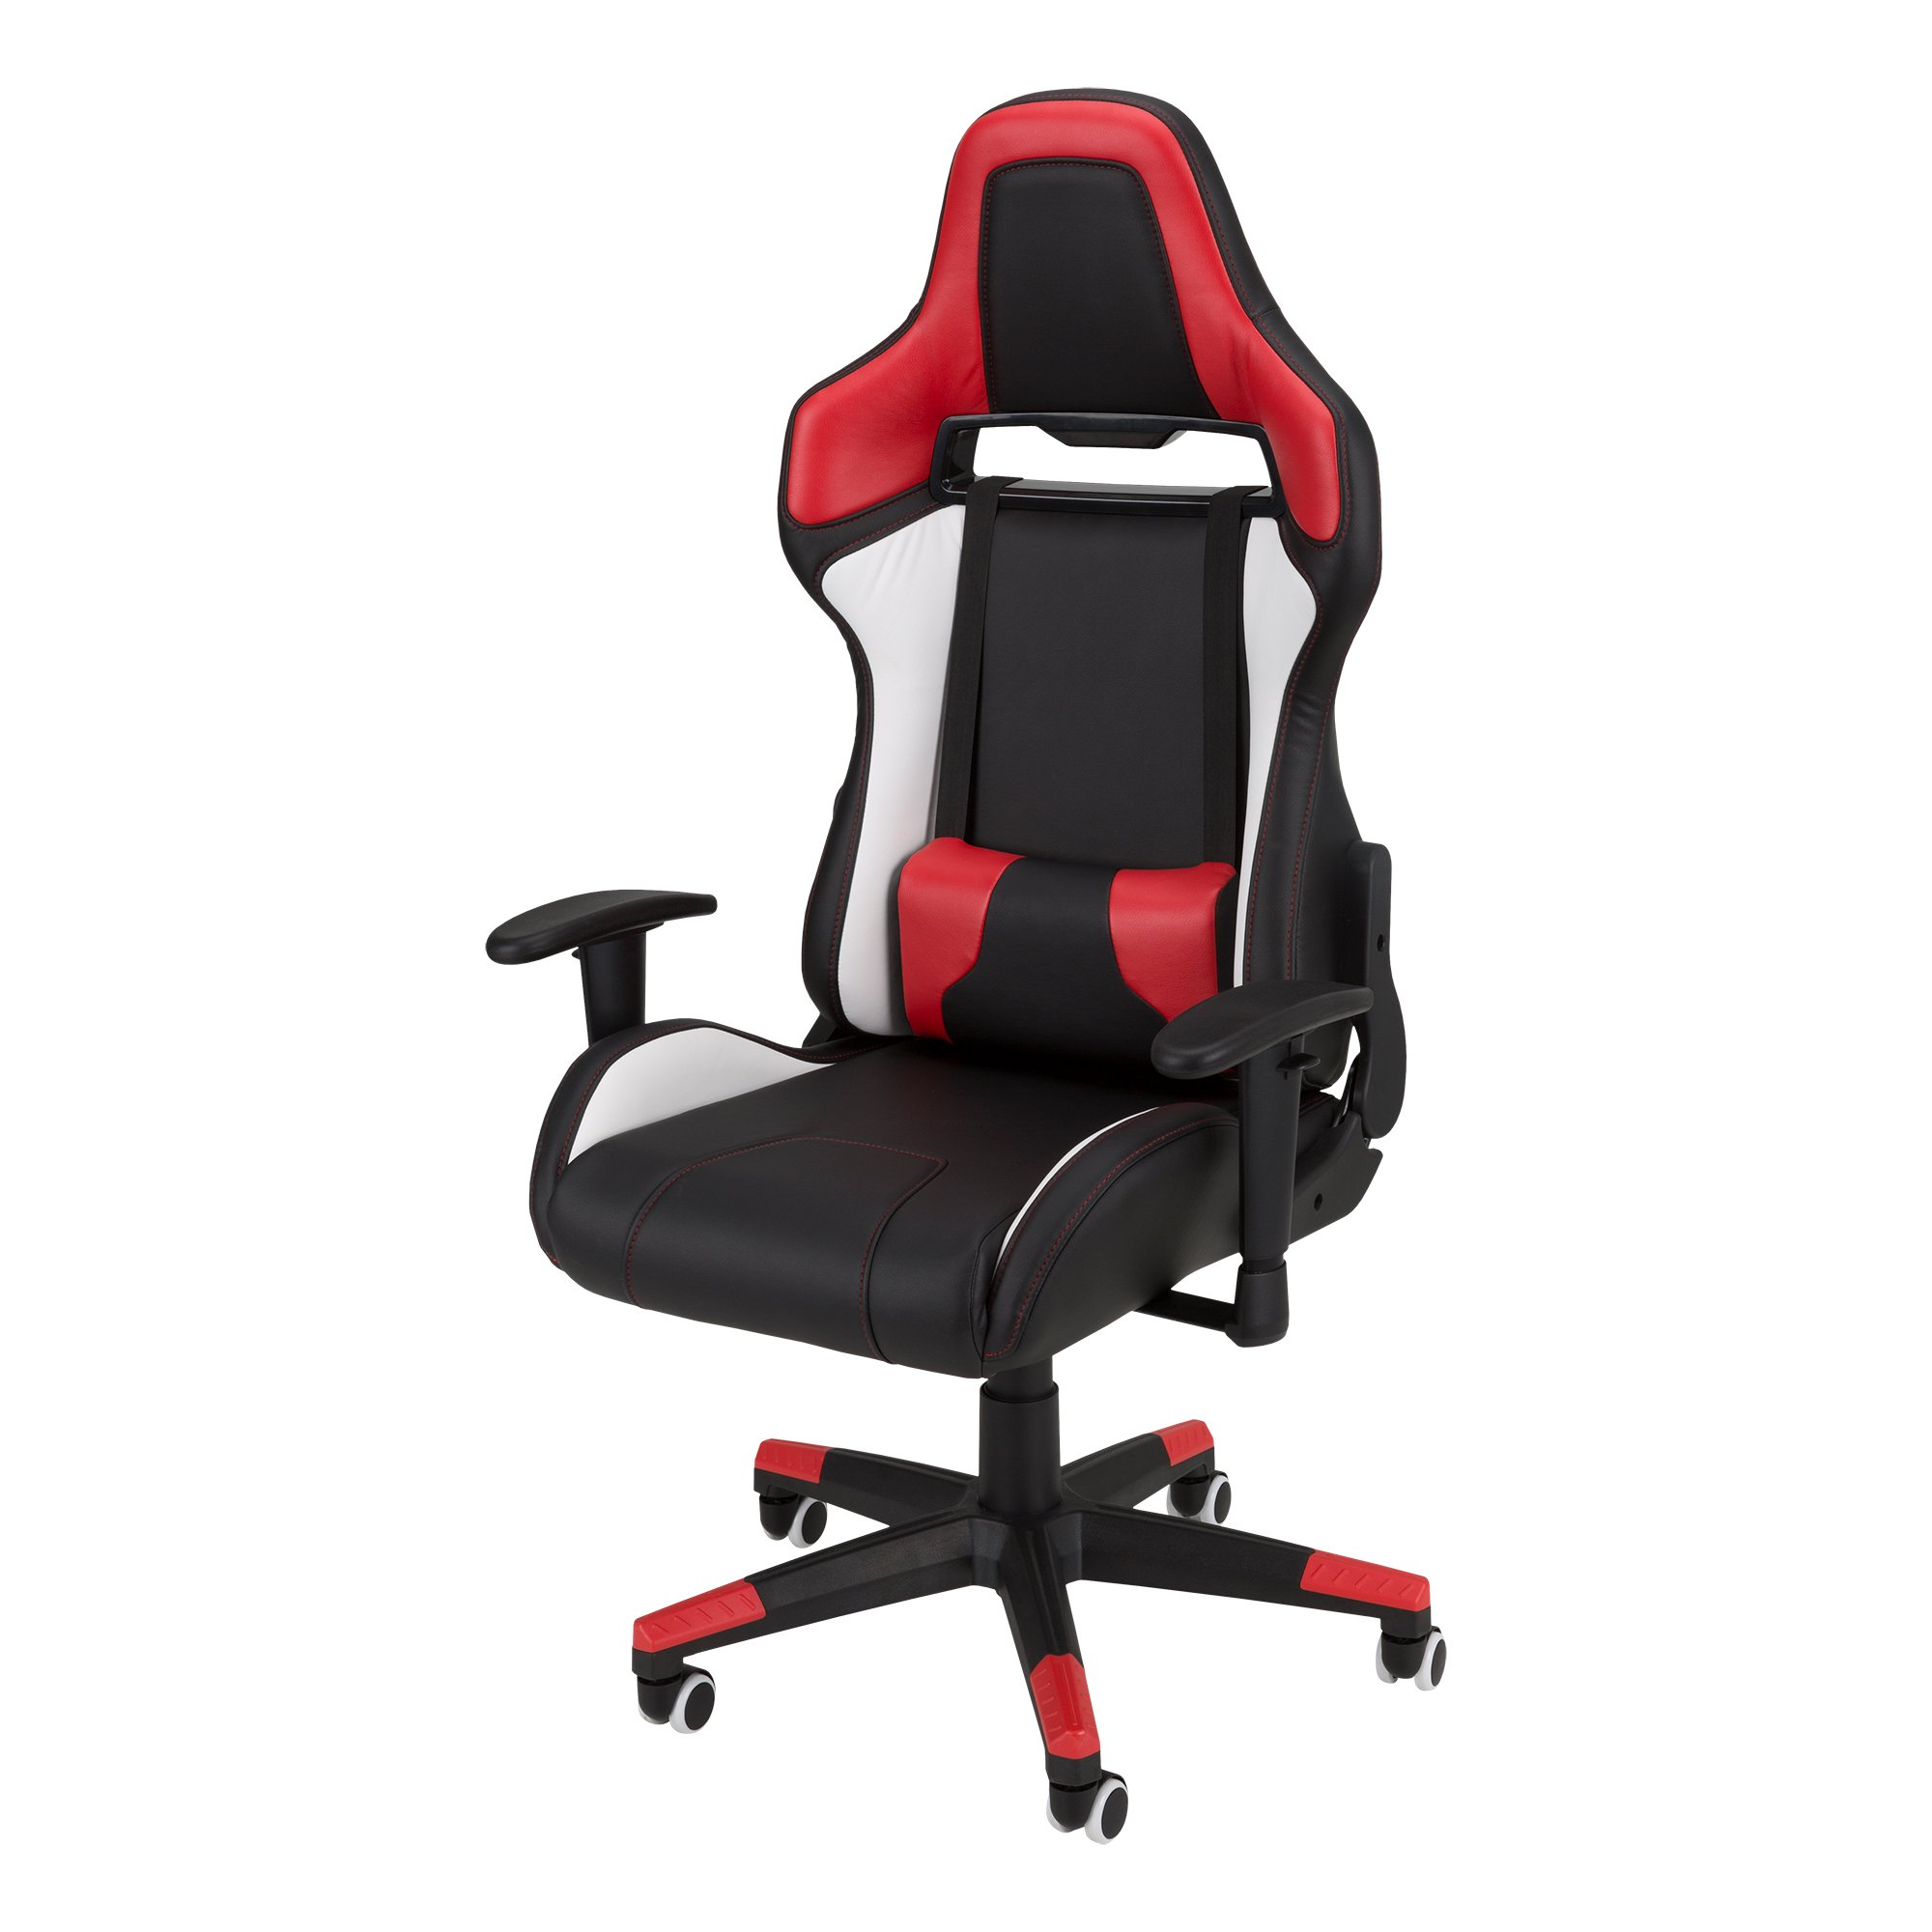 Commander - Racing-Style Gaming Chair by SkyLab Performance Seating F.C., Red/White/Black